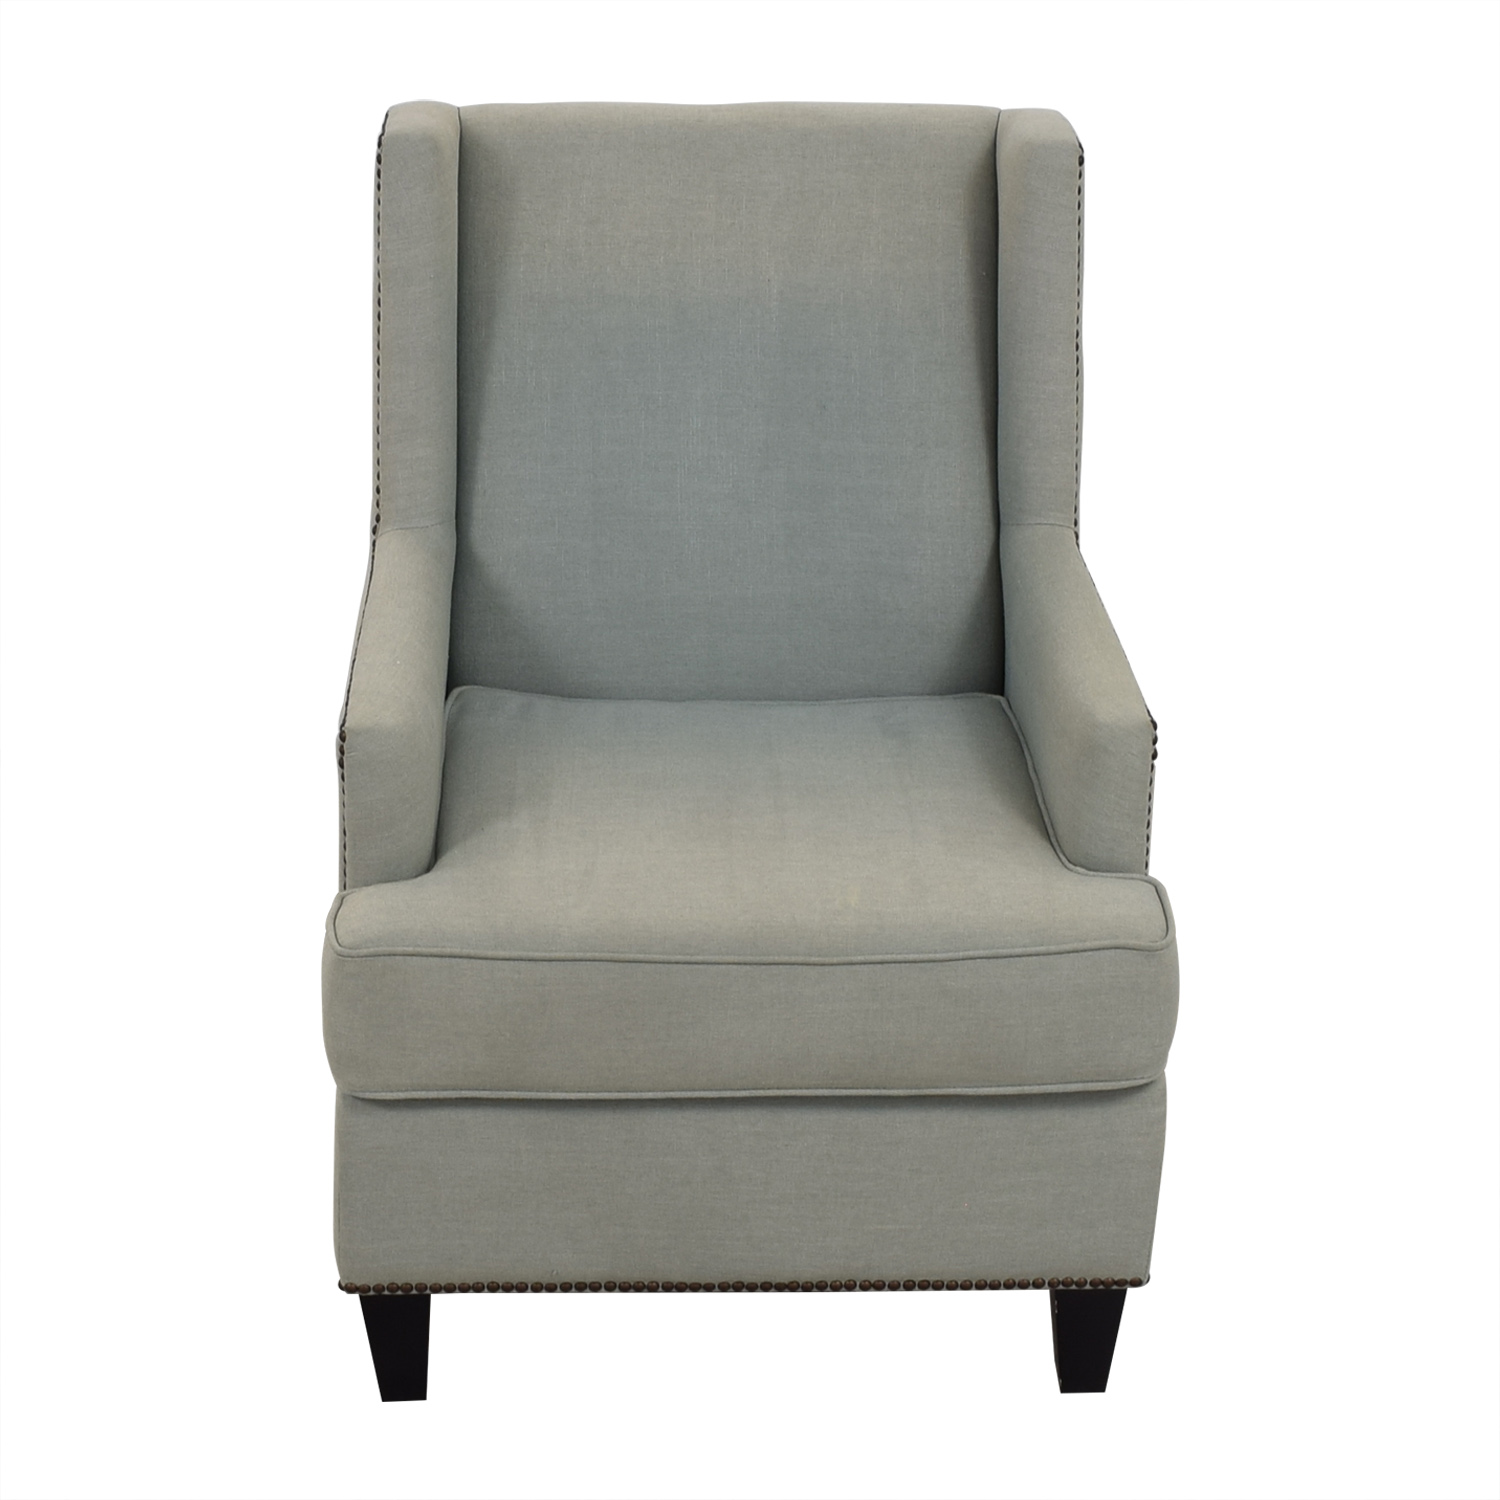 One Kings Lane Blue Upholstered Arm Chair sale